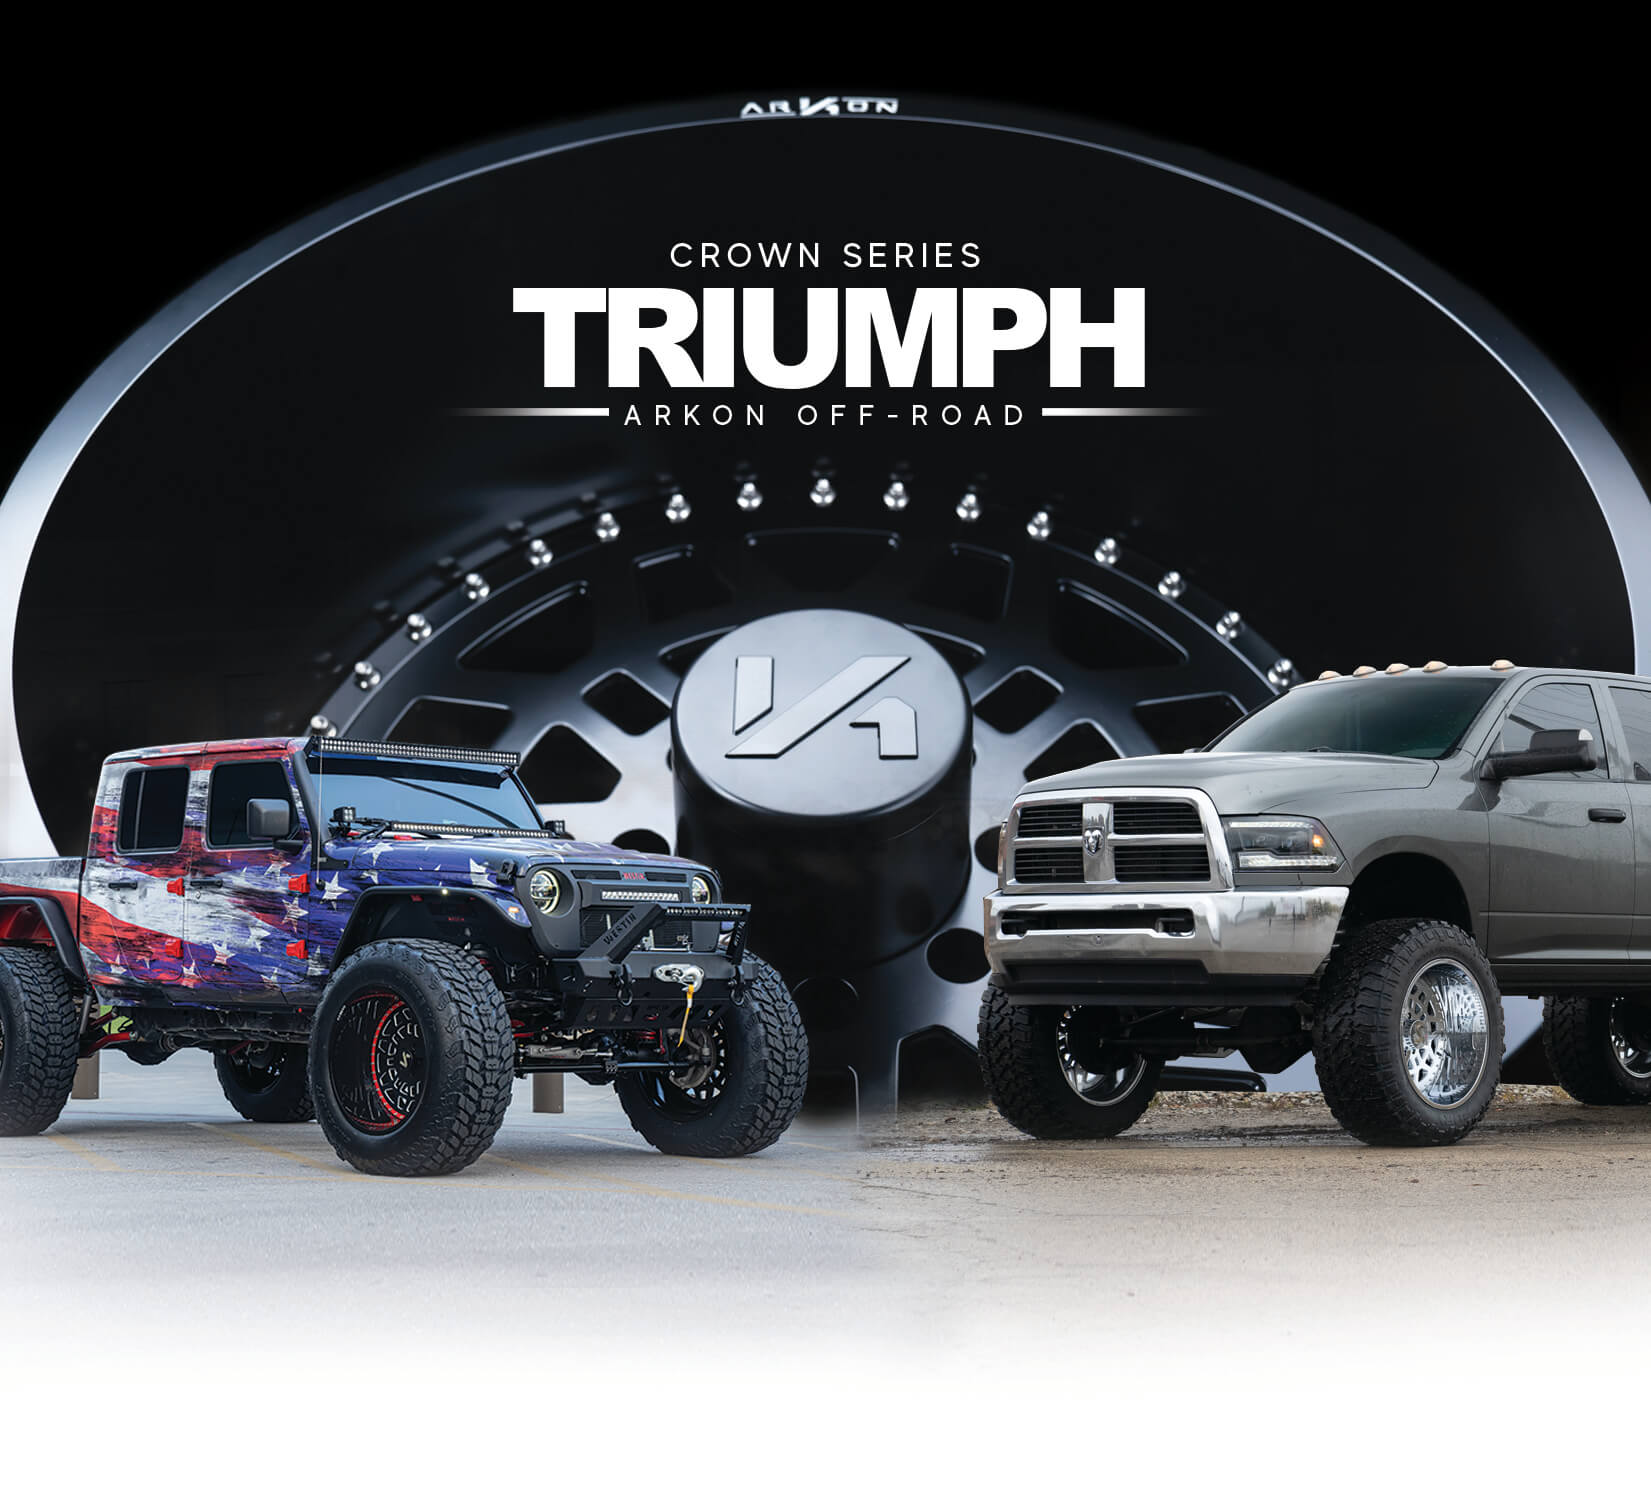 ARKON Pre Launch | Crown Series Triumph Wheels